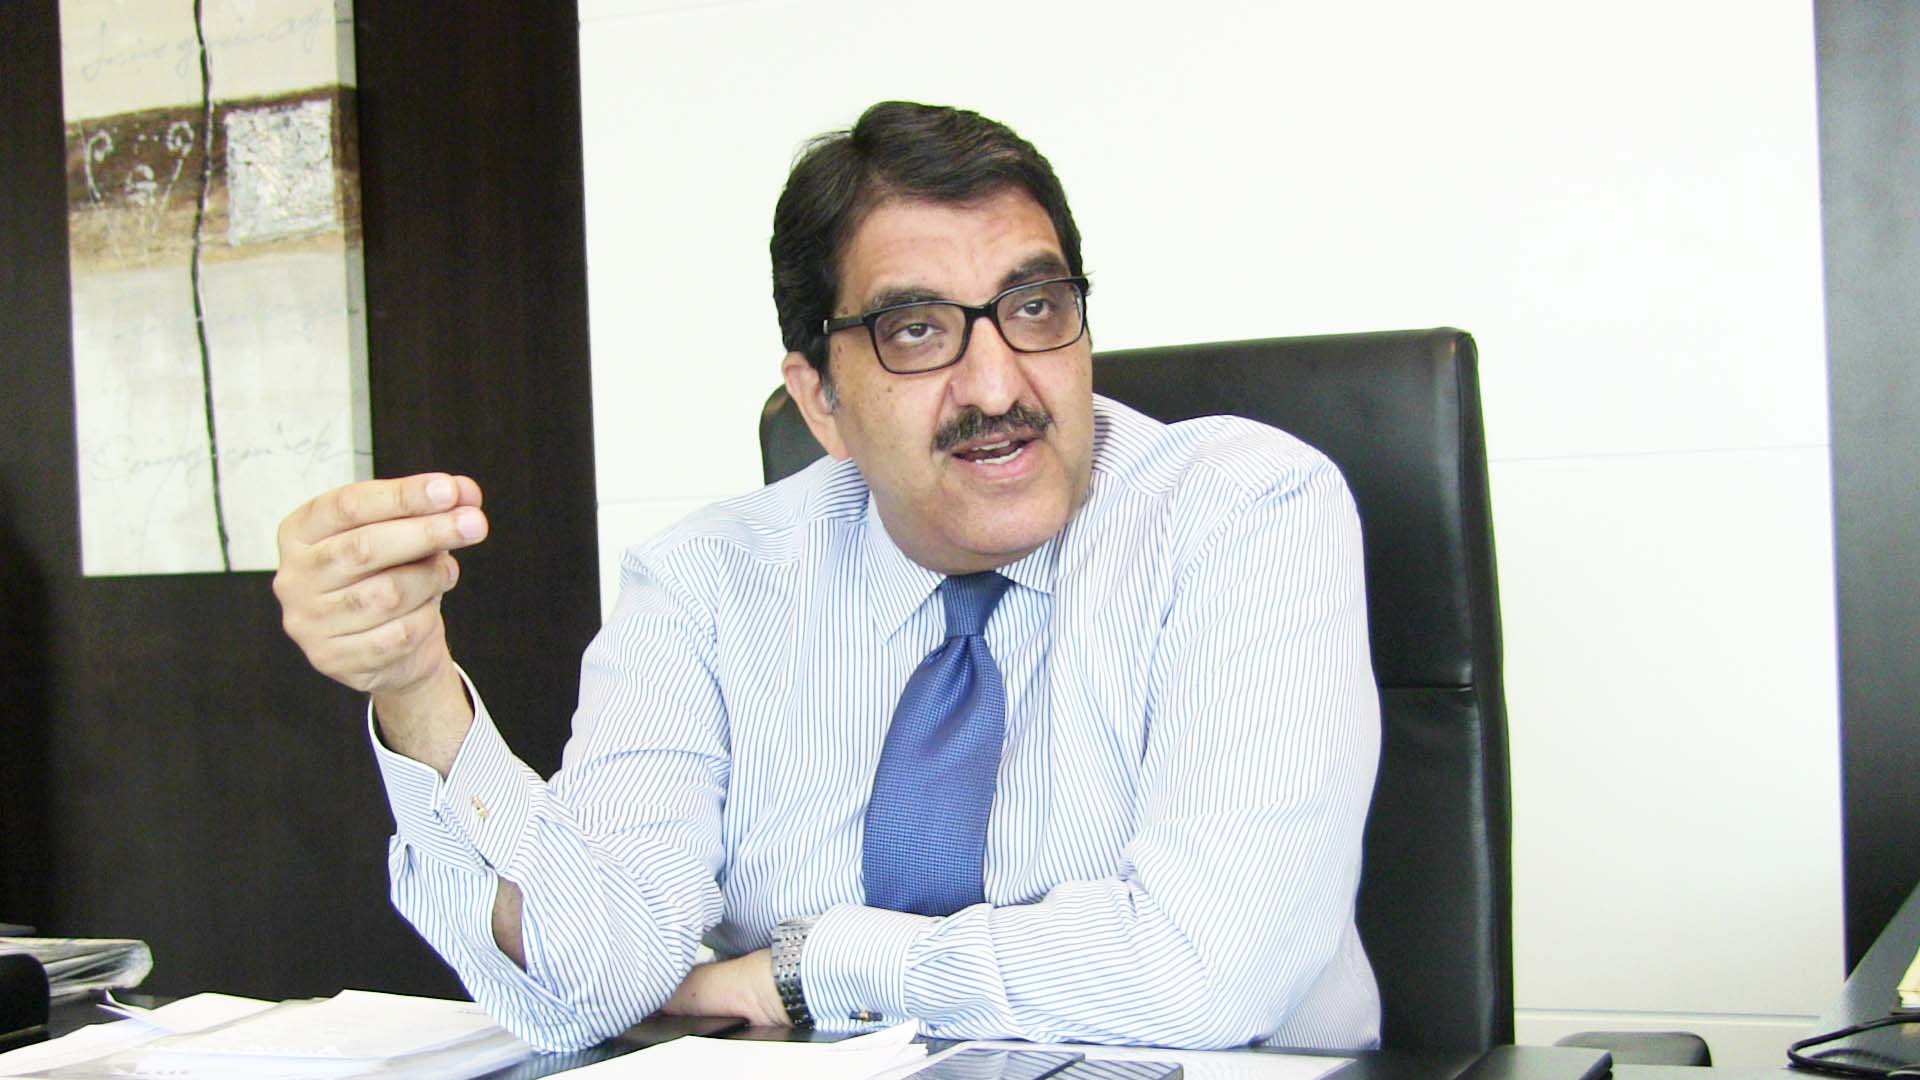 Chairman of e-finance Ibrahim Sarhan (DNE photo/ Omar Al-Qorashi)